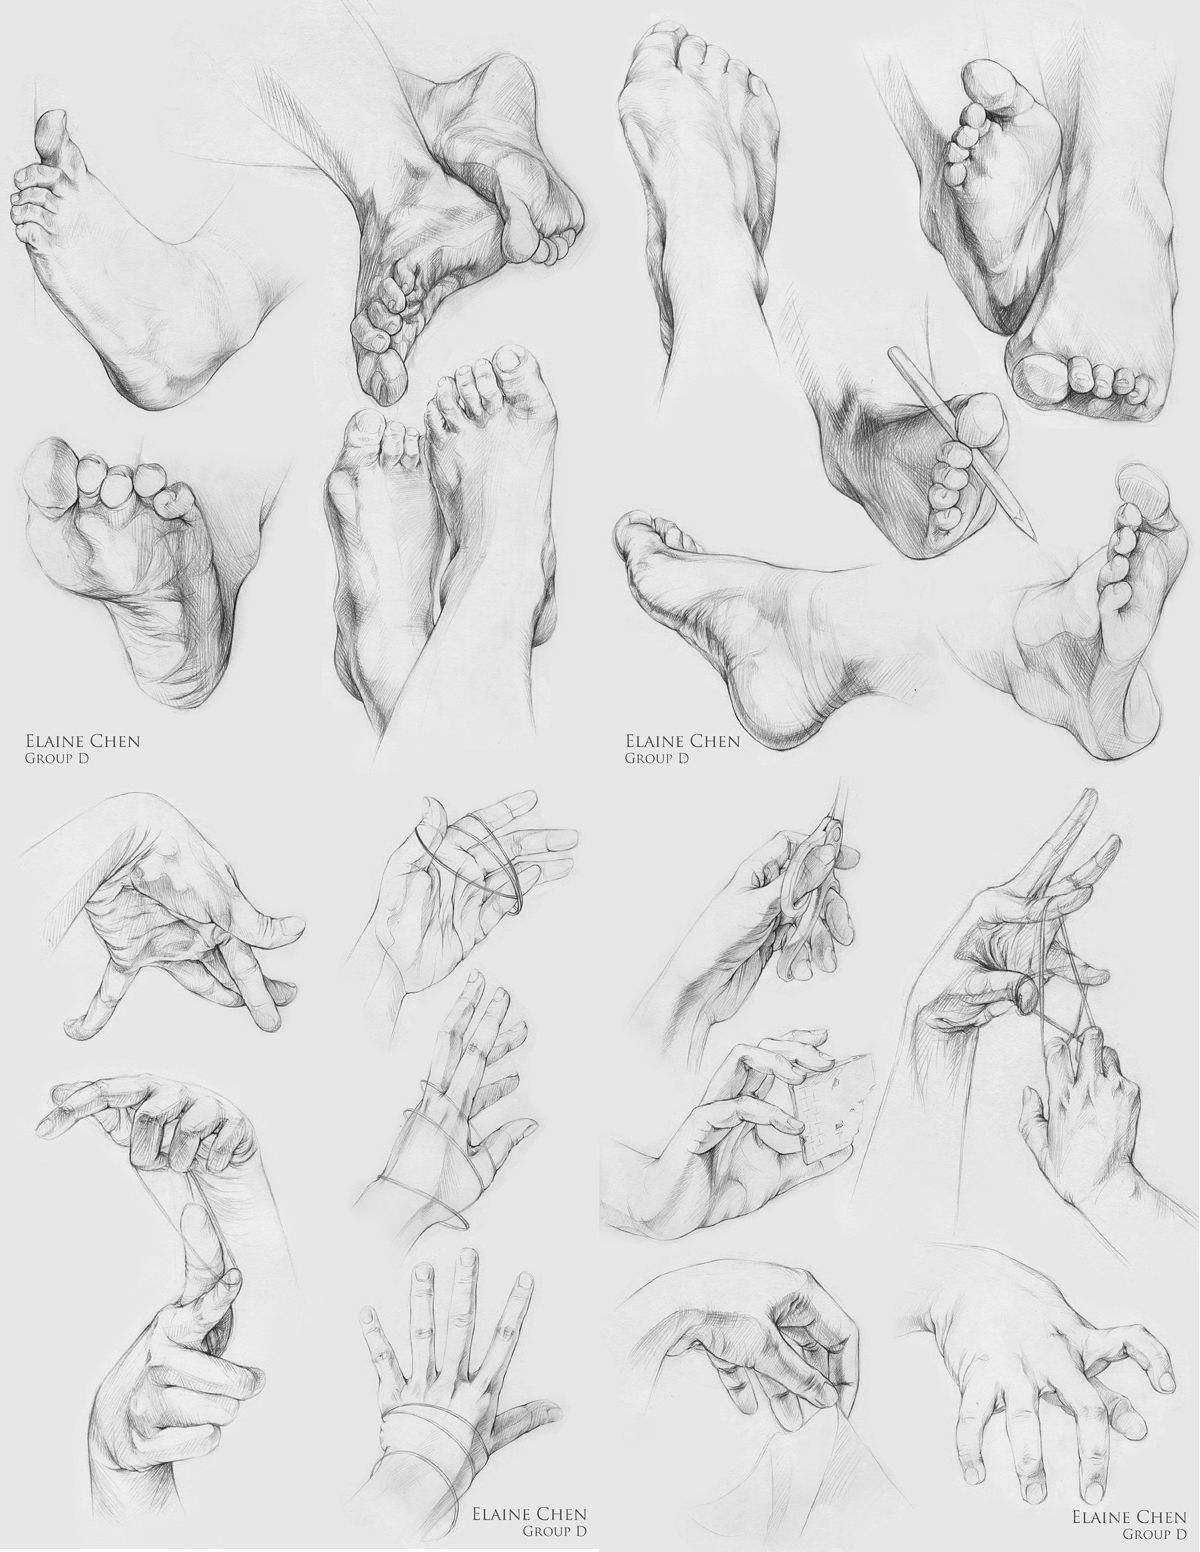 Pin by Donny Yuwono on Sketches | Pinterest | Anatomy, Draw and Sketches